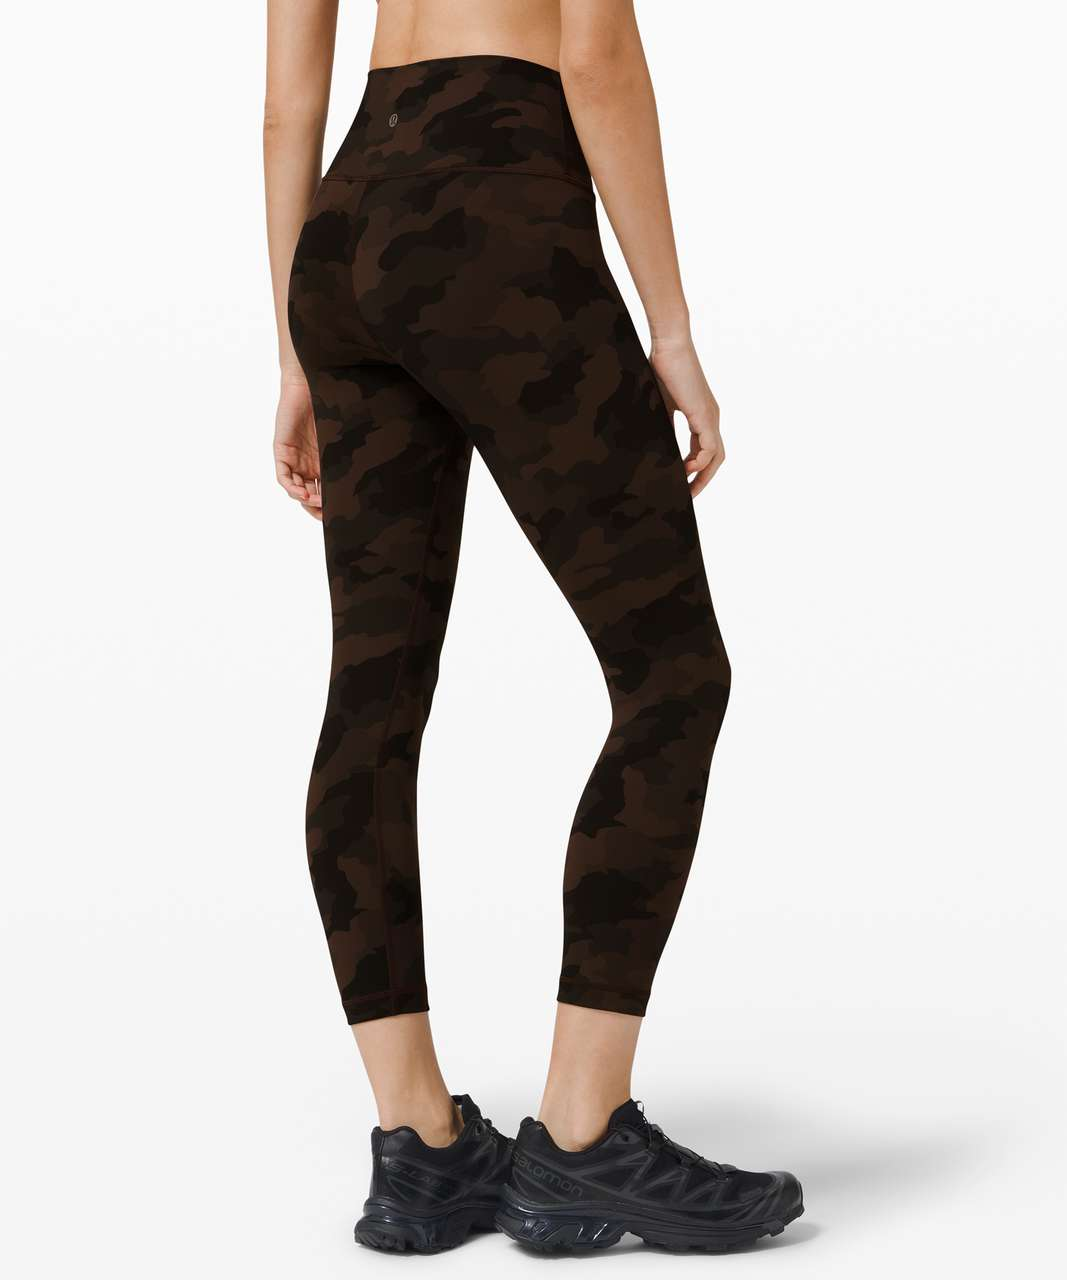 "Lululemon Wunder Under Crop High-Rise *Full-On Luxtreme 23"" - Heritage 365 Camo Brown Earth Multi"